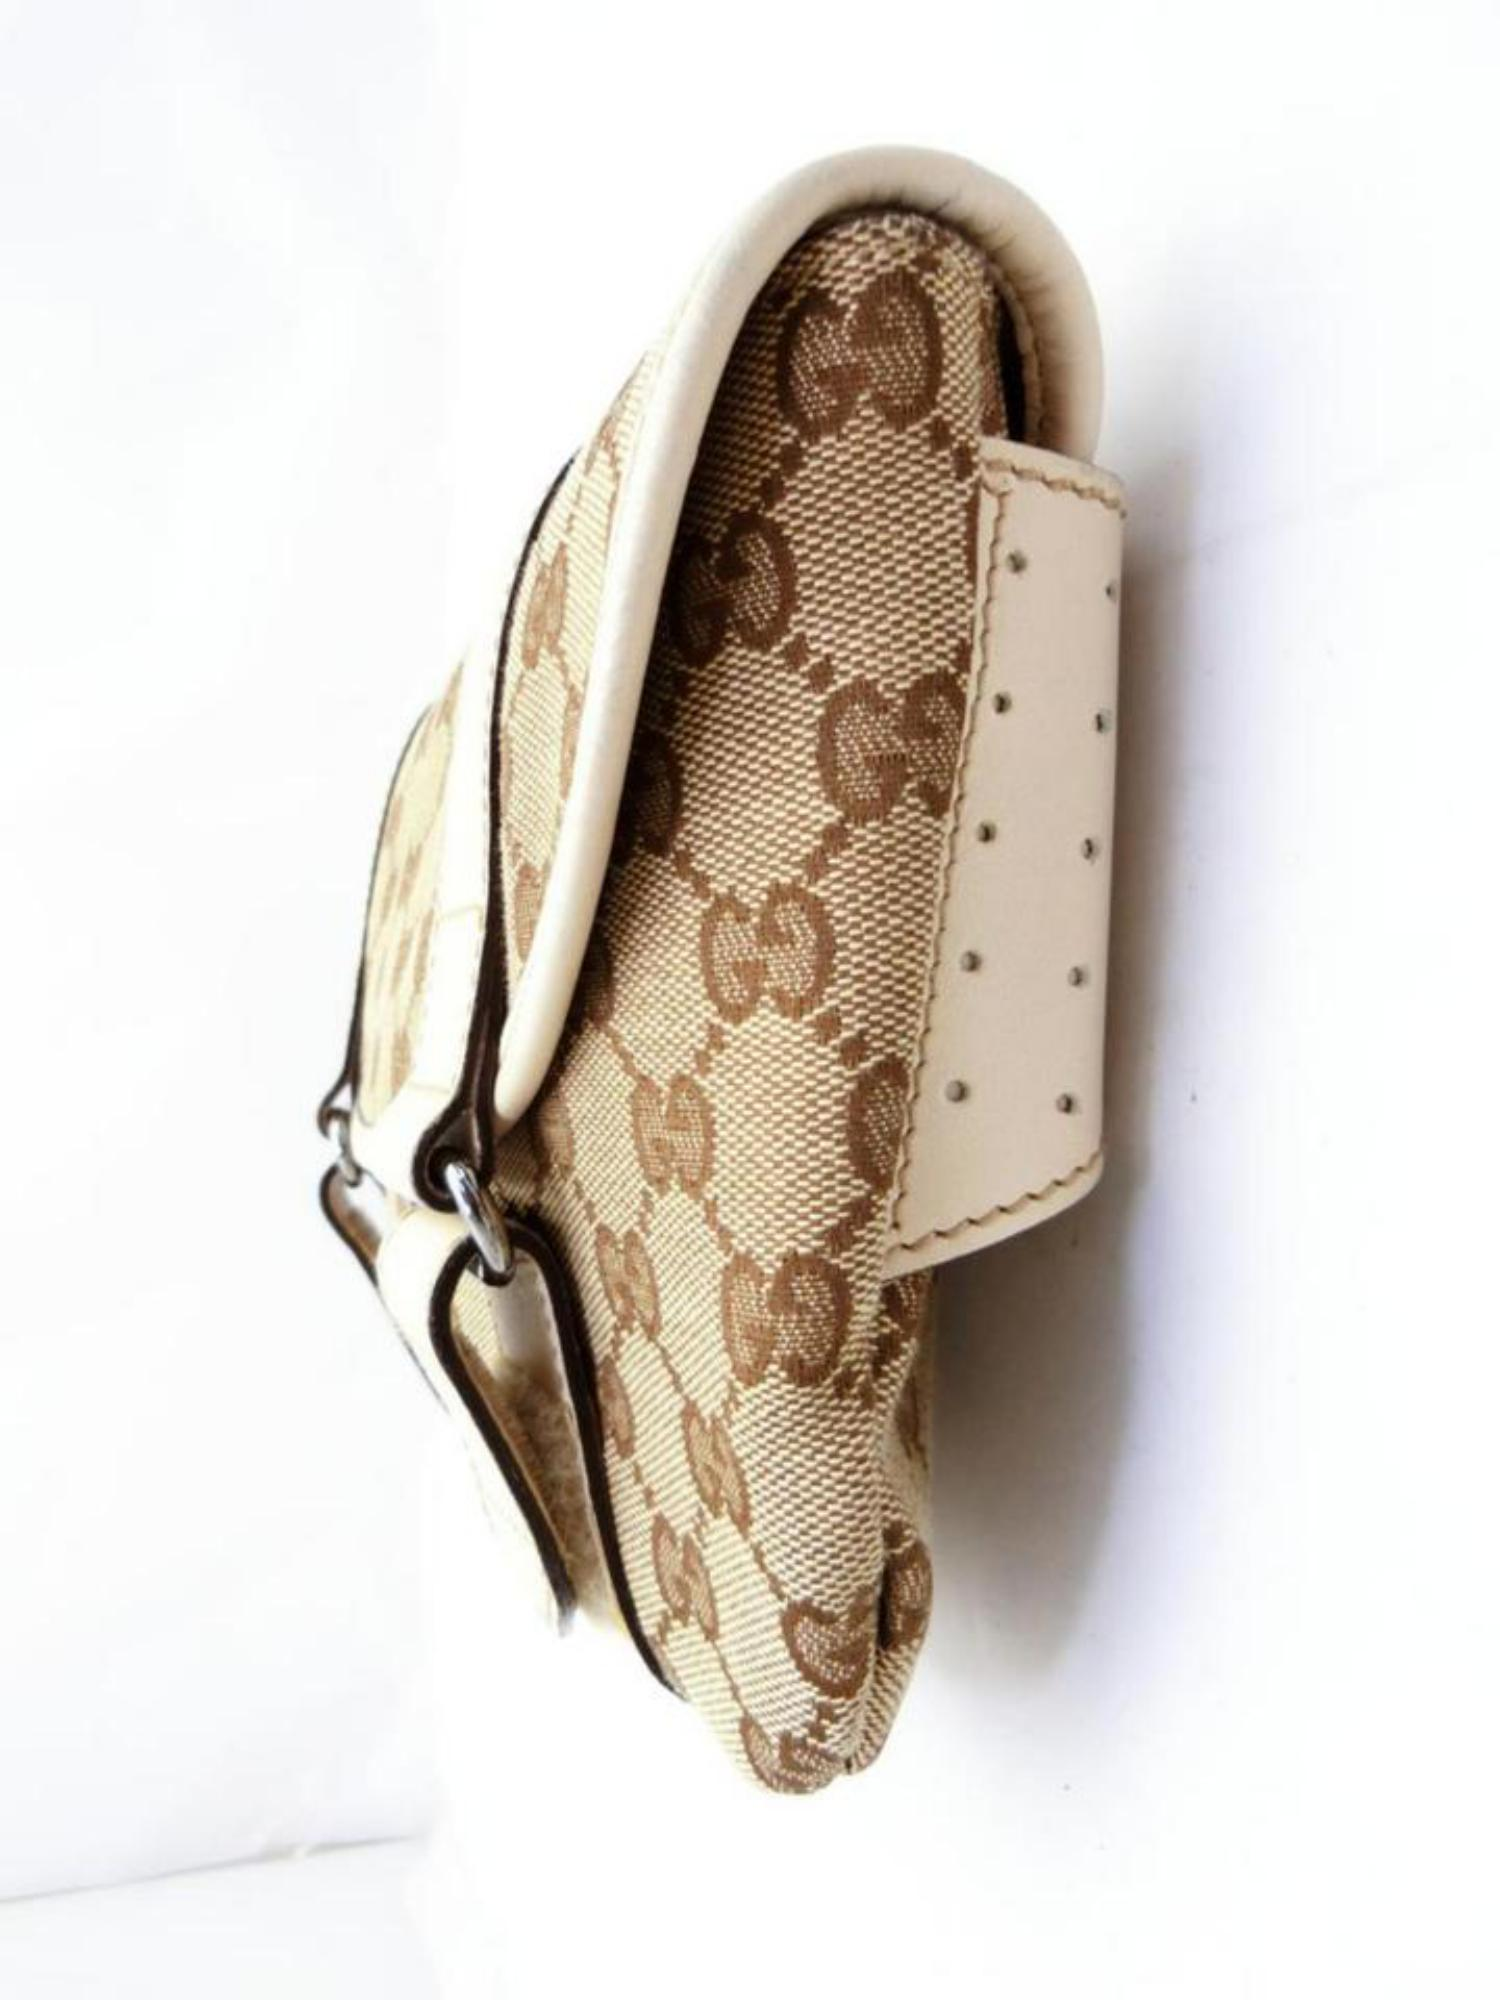 294531115bb4 Gucci Monogram Waist Pouch Fanny Pack 229998 Beige Coated Canvas Cross Body  Bag For Sale at 1stdibs